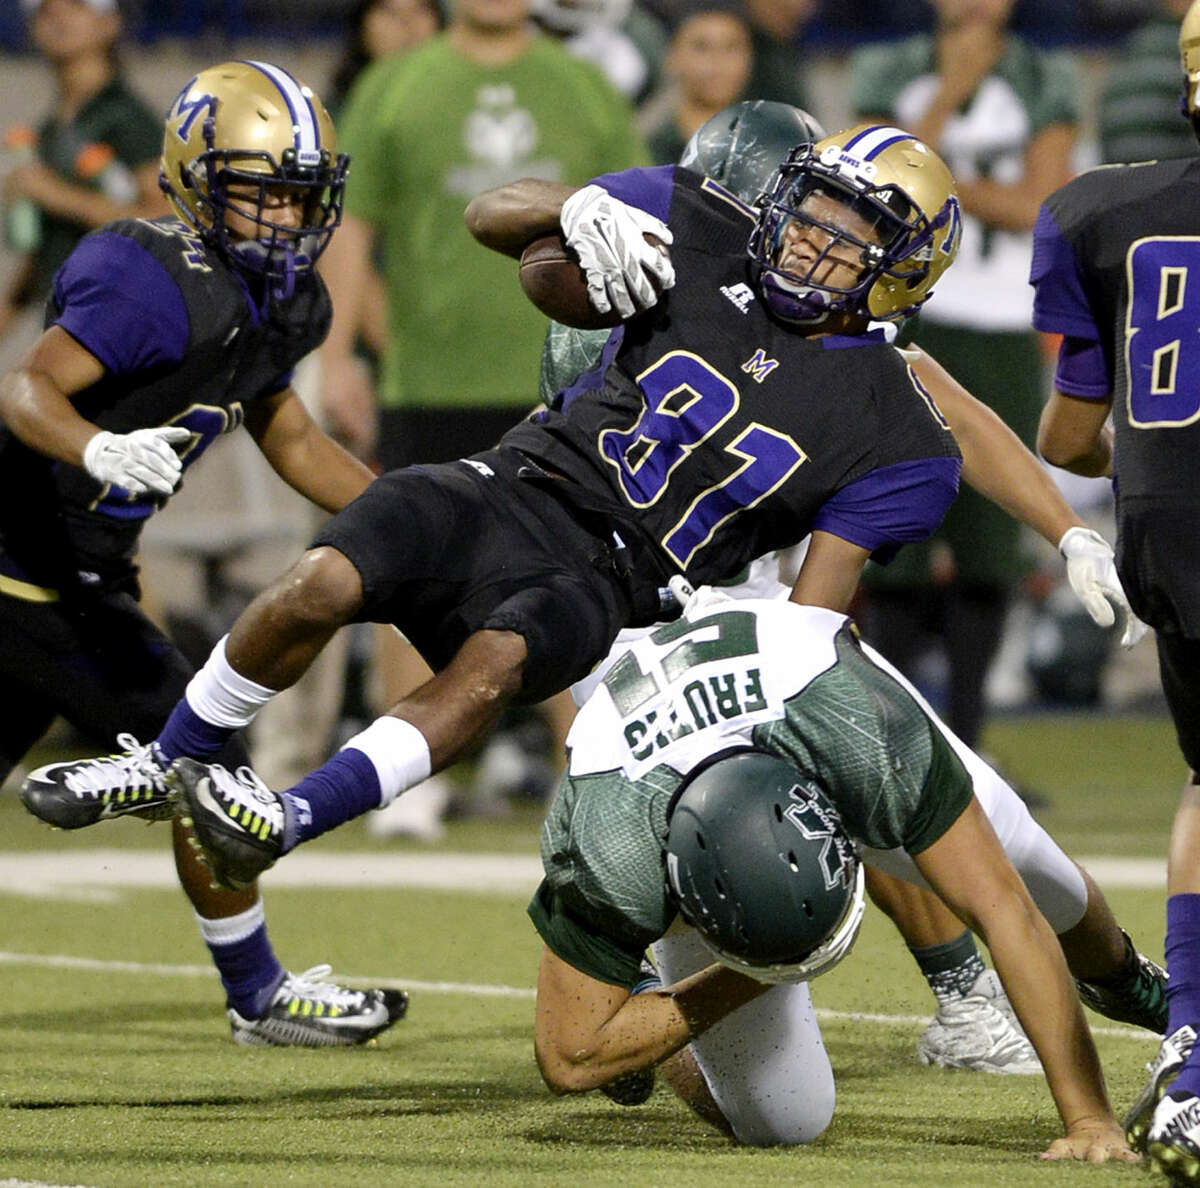 Midland High wide receiver Courtney McMaryion (81) is stopped by El Paso Montwood's Phillip Frutig (51) on Friday, Sept. 4, 2015, at Grande Communications Stadium. James Durbin/Reporter-Telegram